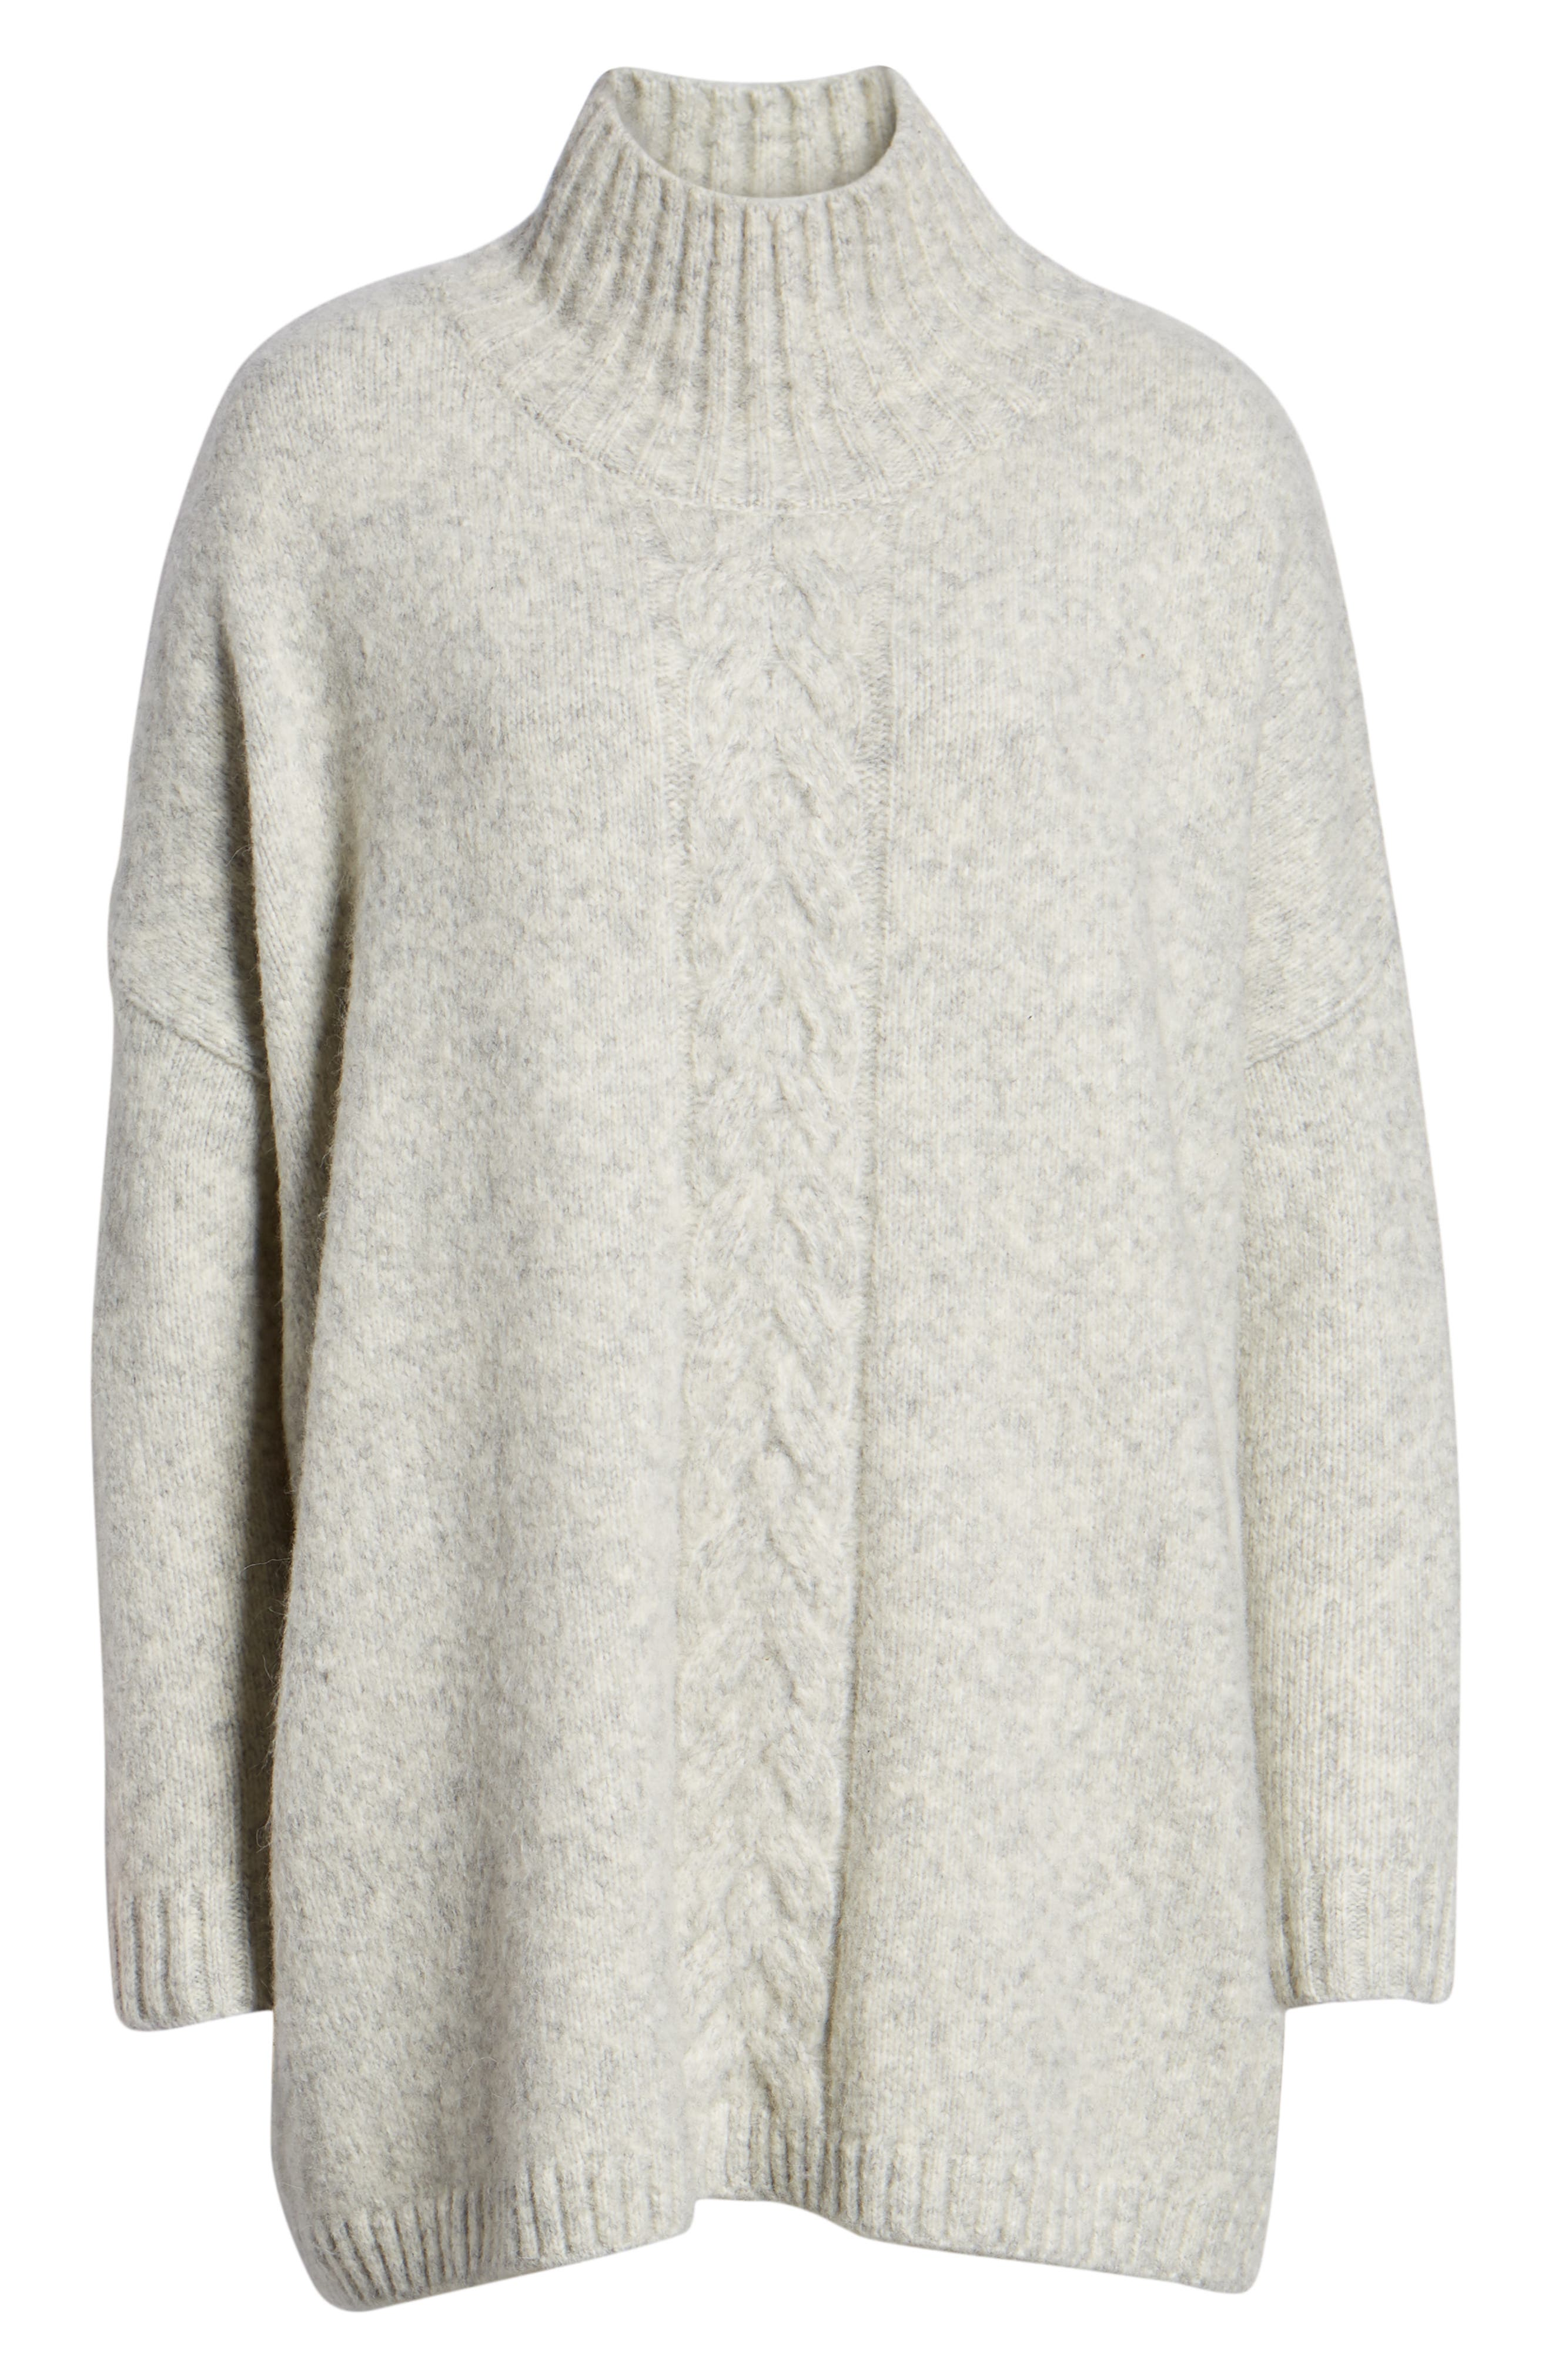 FRENCH CONNECTION, Ora Knit Pullover, Alternate thumbnail 6, color, LIGHT GREY MEL